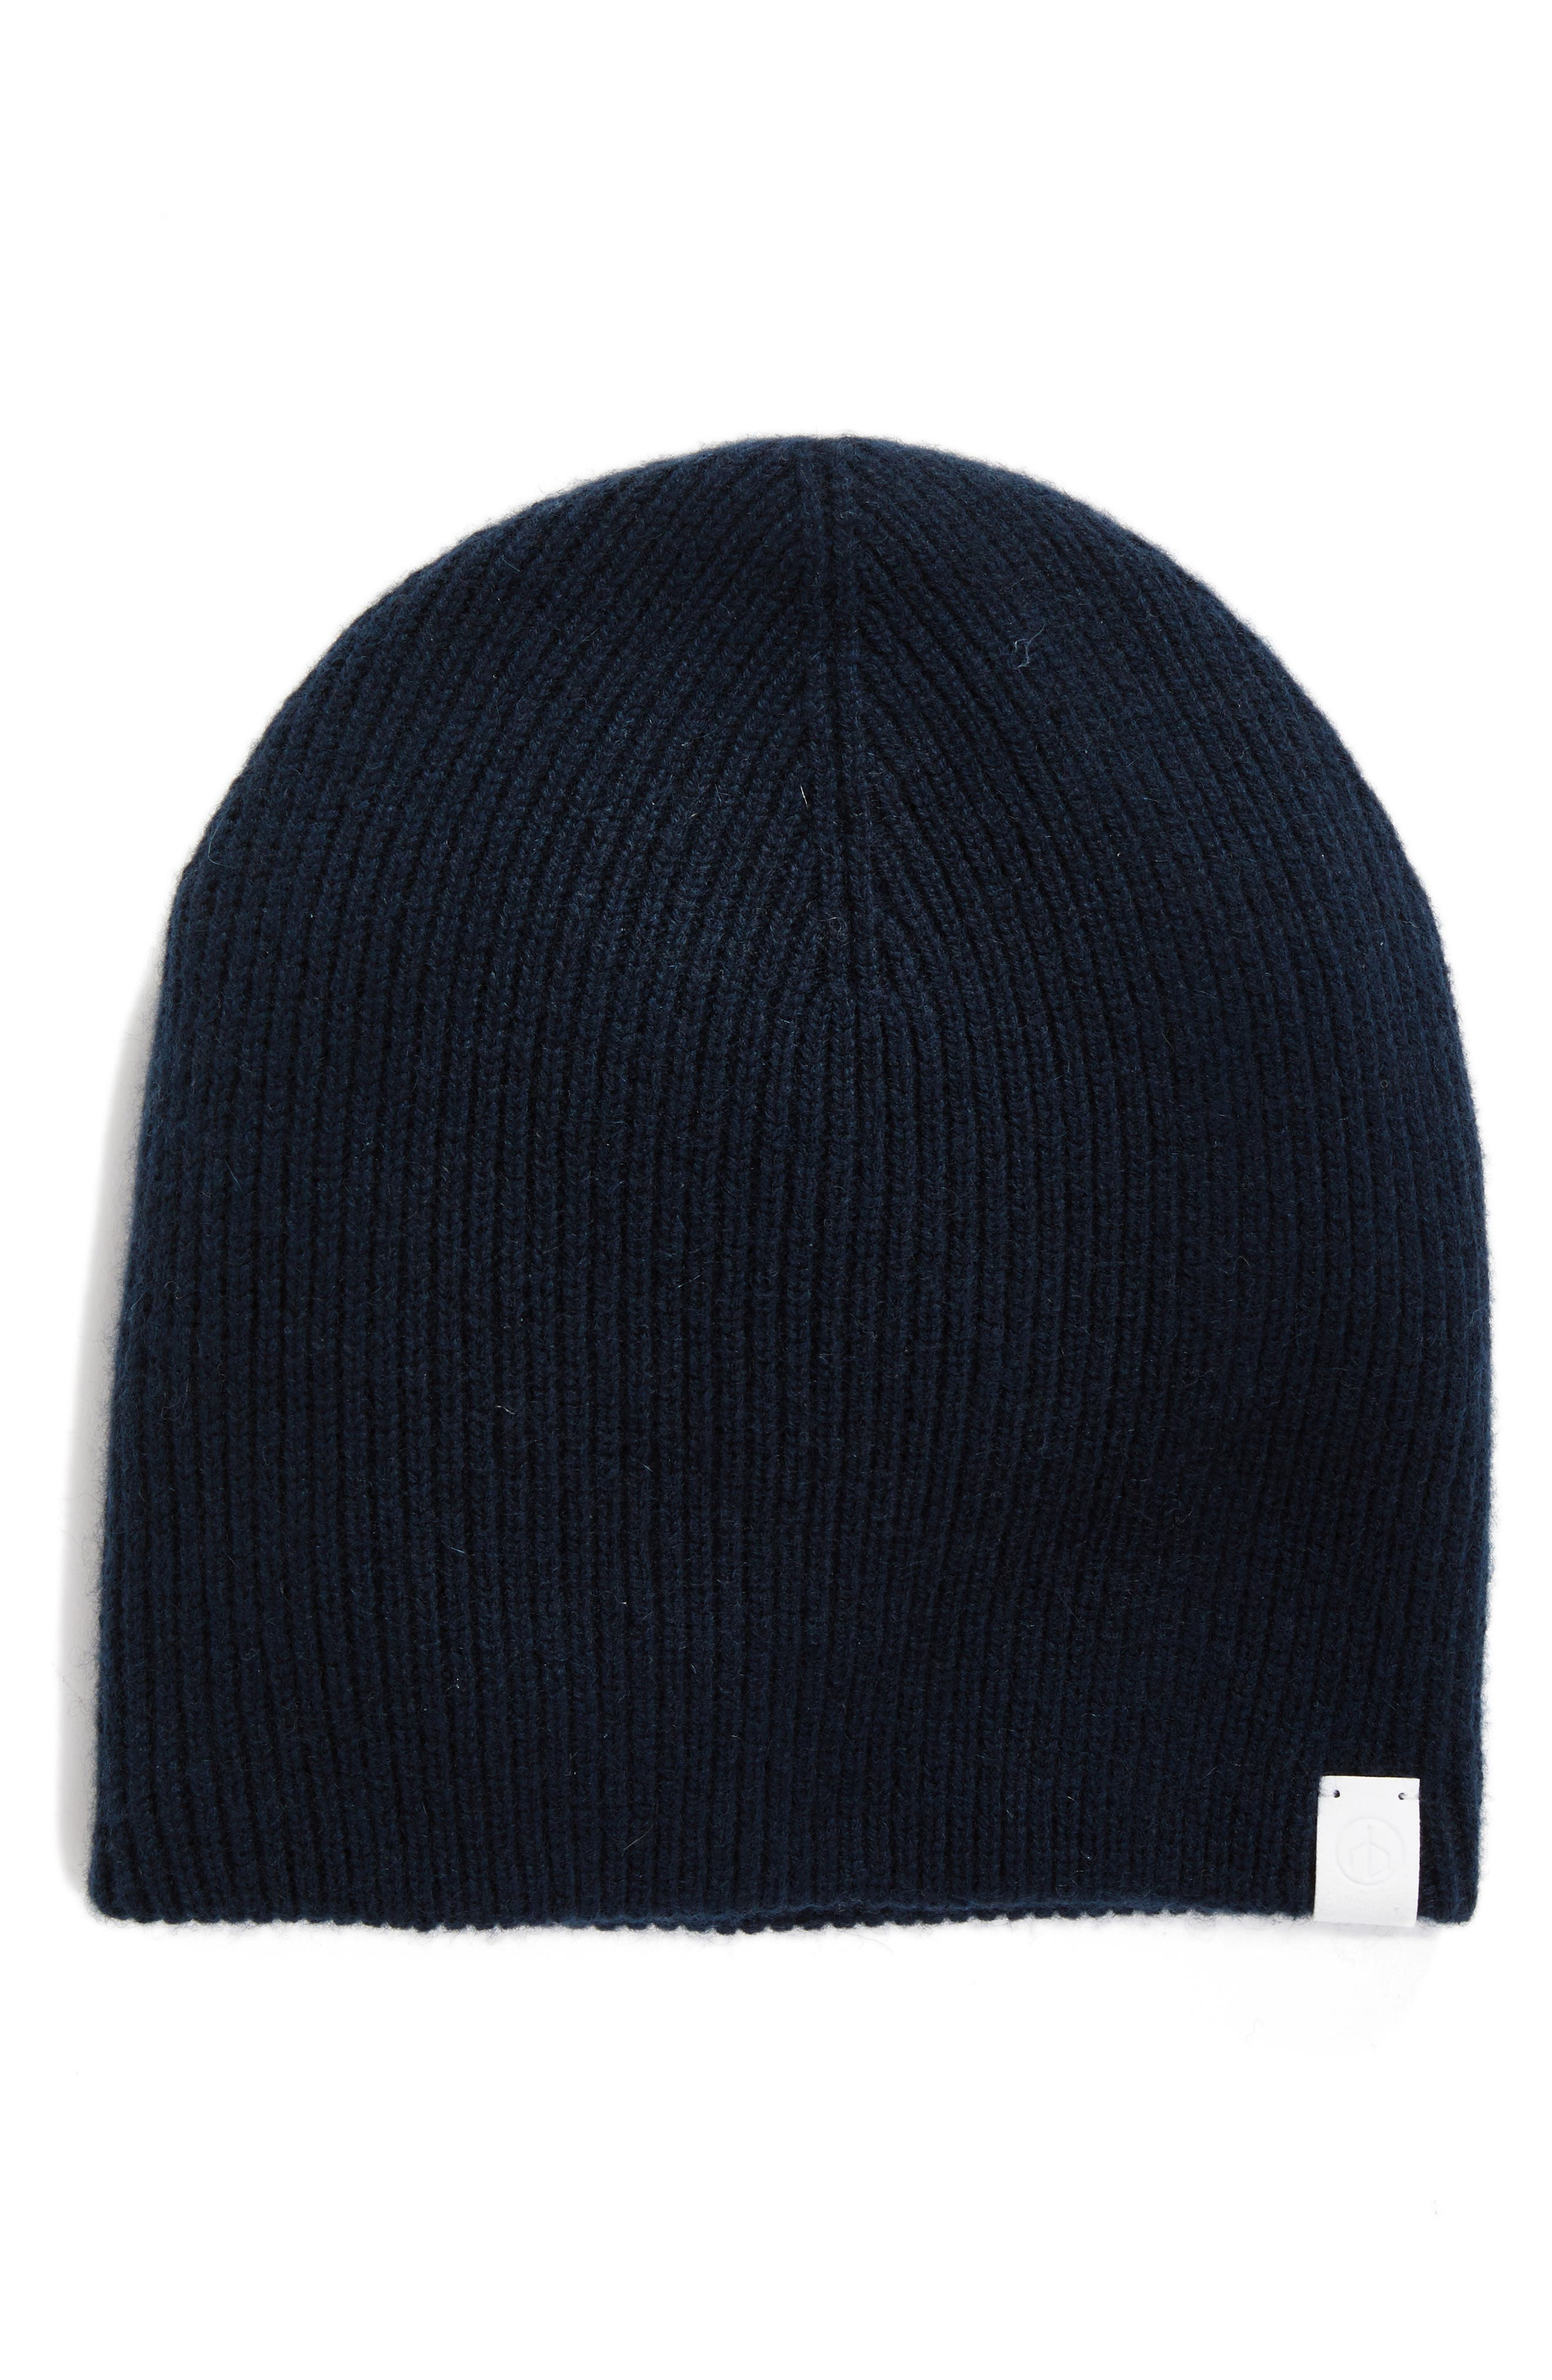 Ace Reversible Cashmere Beanie,                             Main thumbnail 1, color,                             Navy